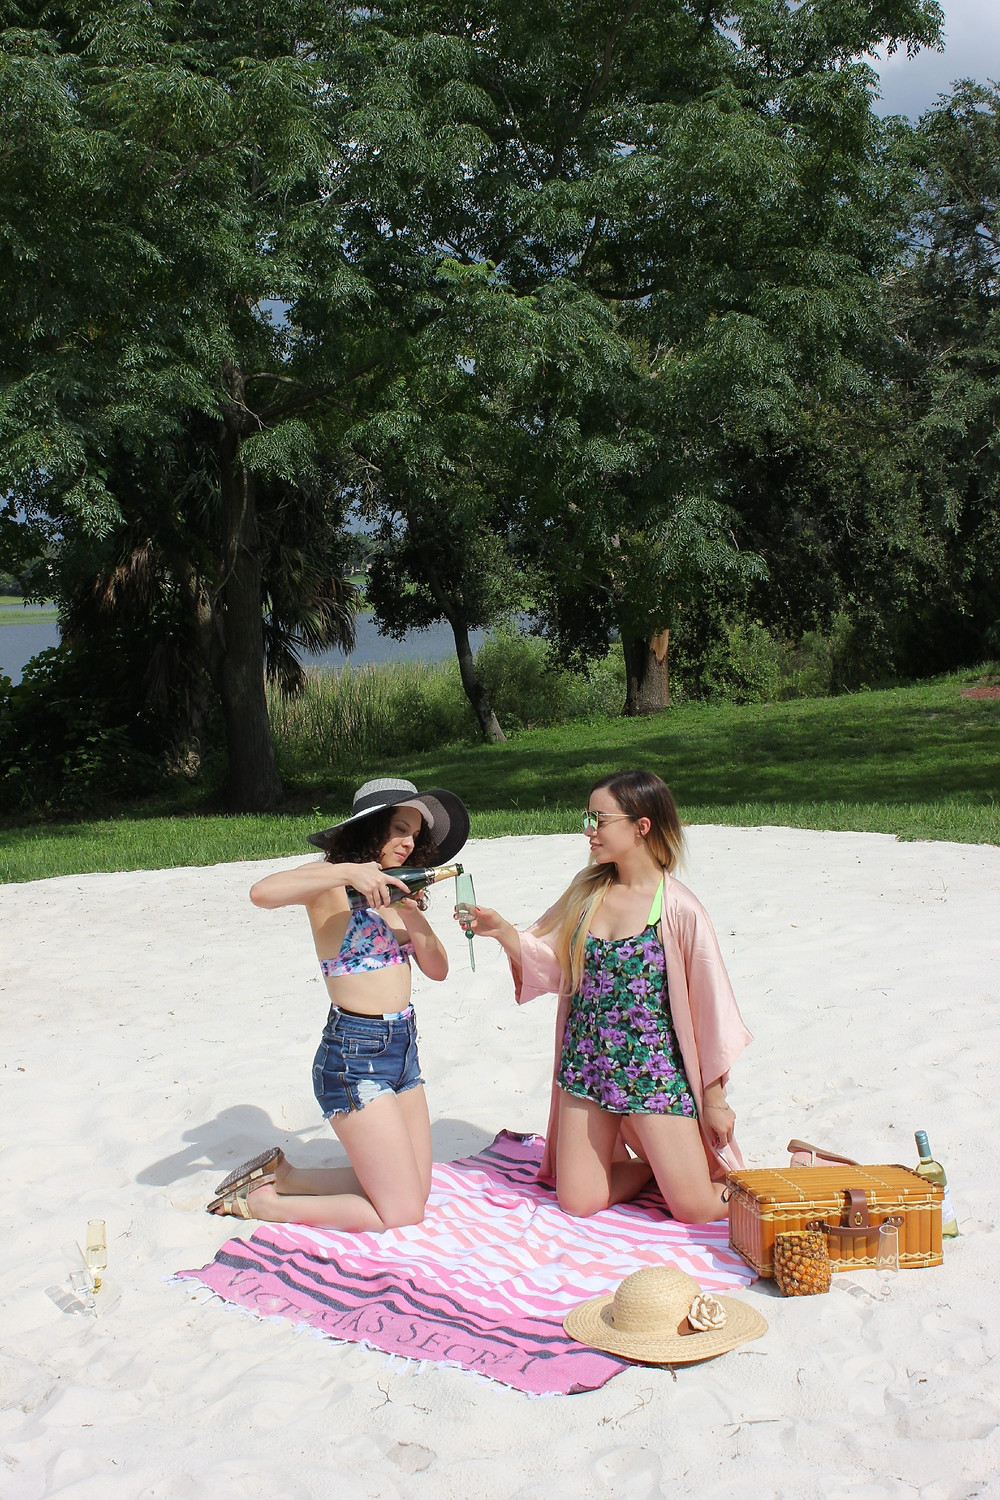 Orlando-Fashion-Bloggers-Katrina-Belle-And-Lulu-Monty-For-The-Beach-Glass